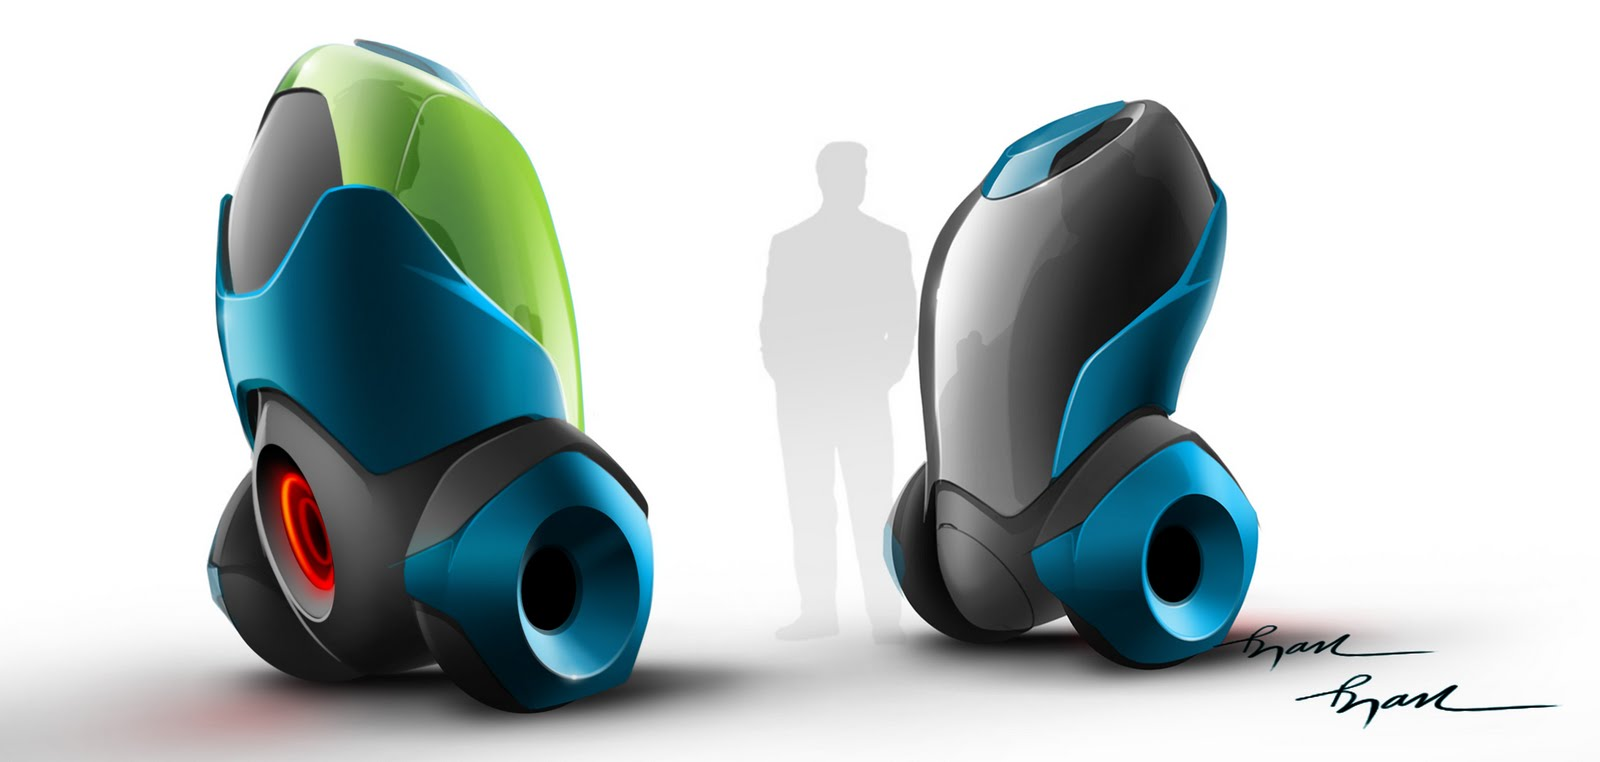 Automotive concept sketch for future single person transport by ryan